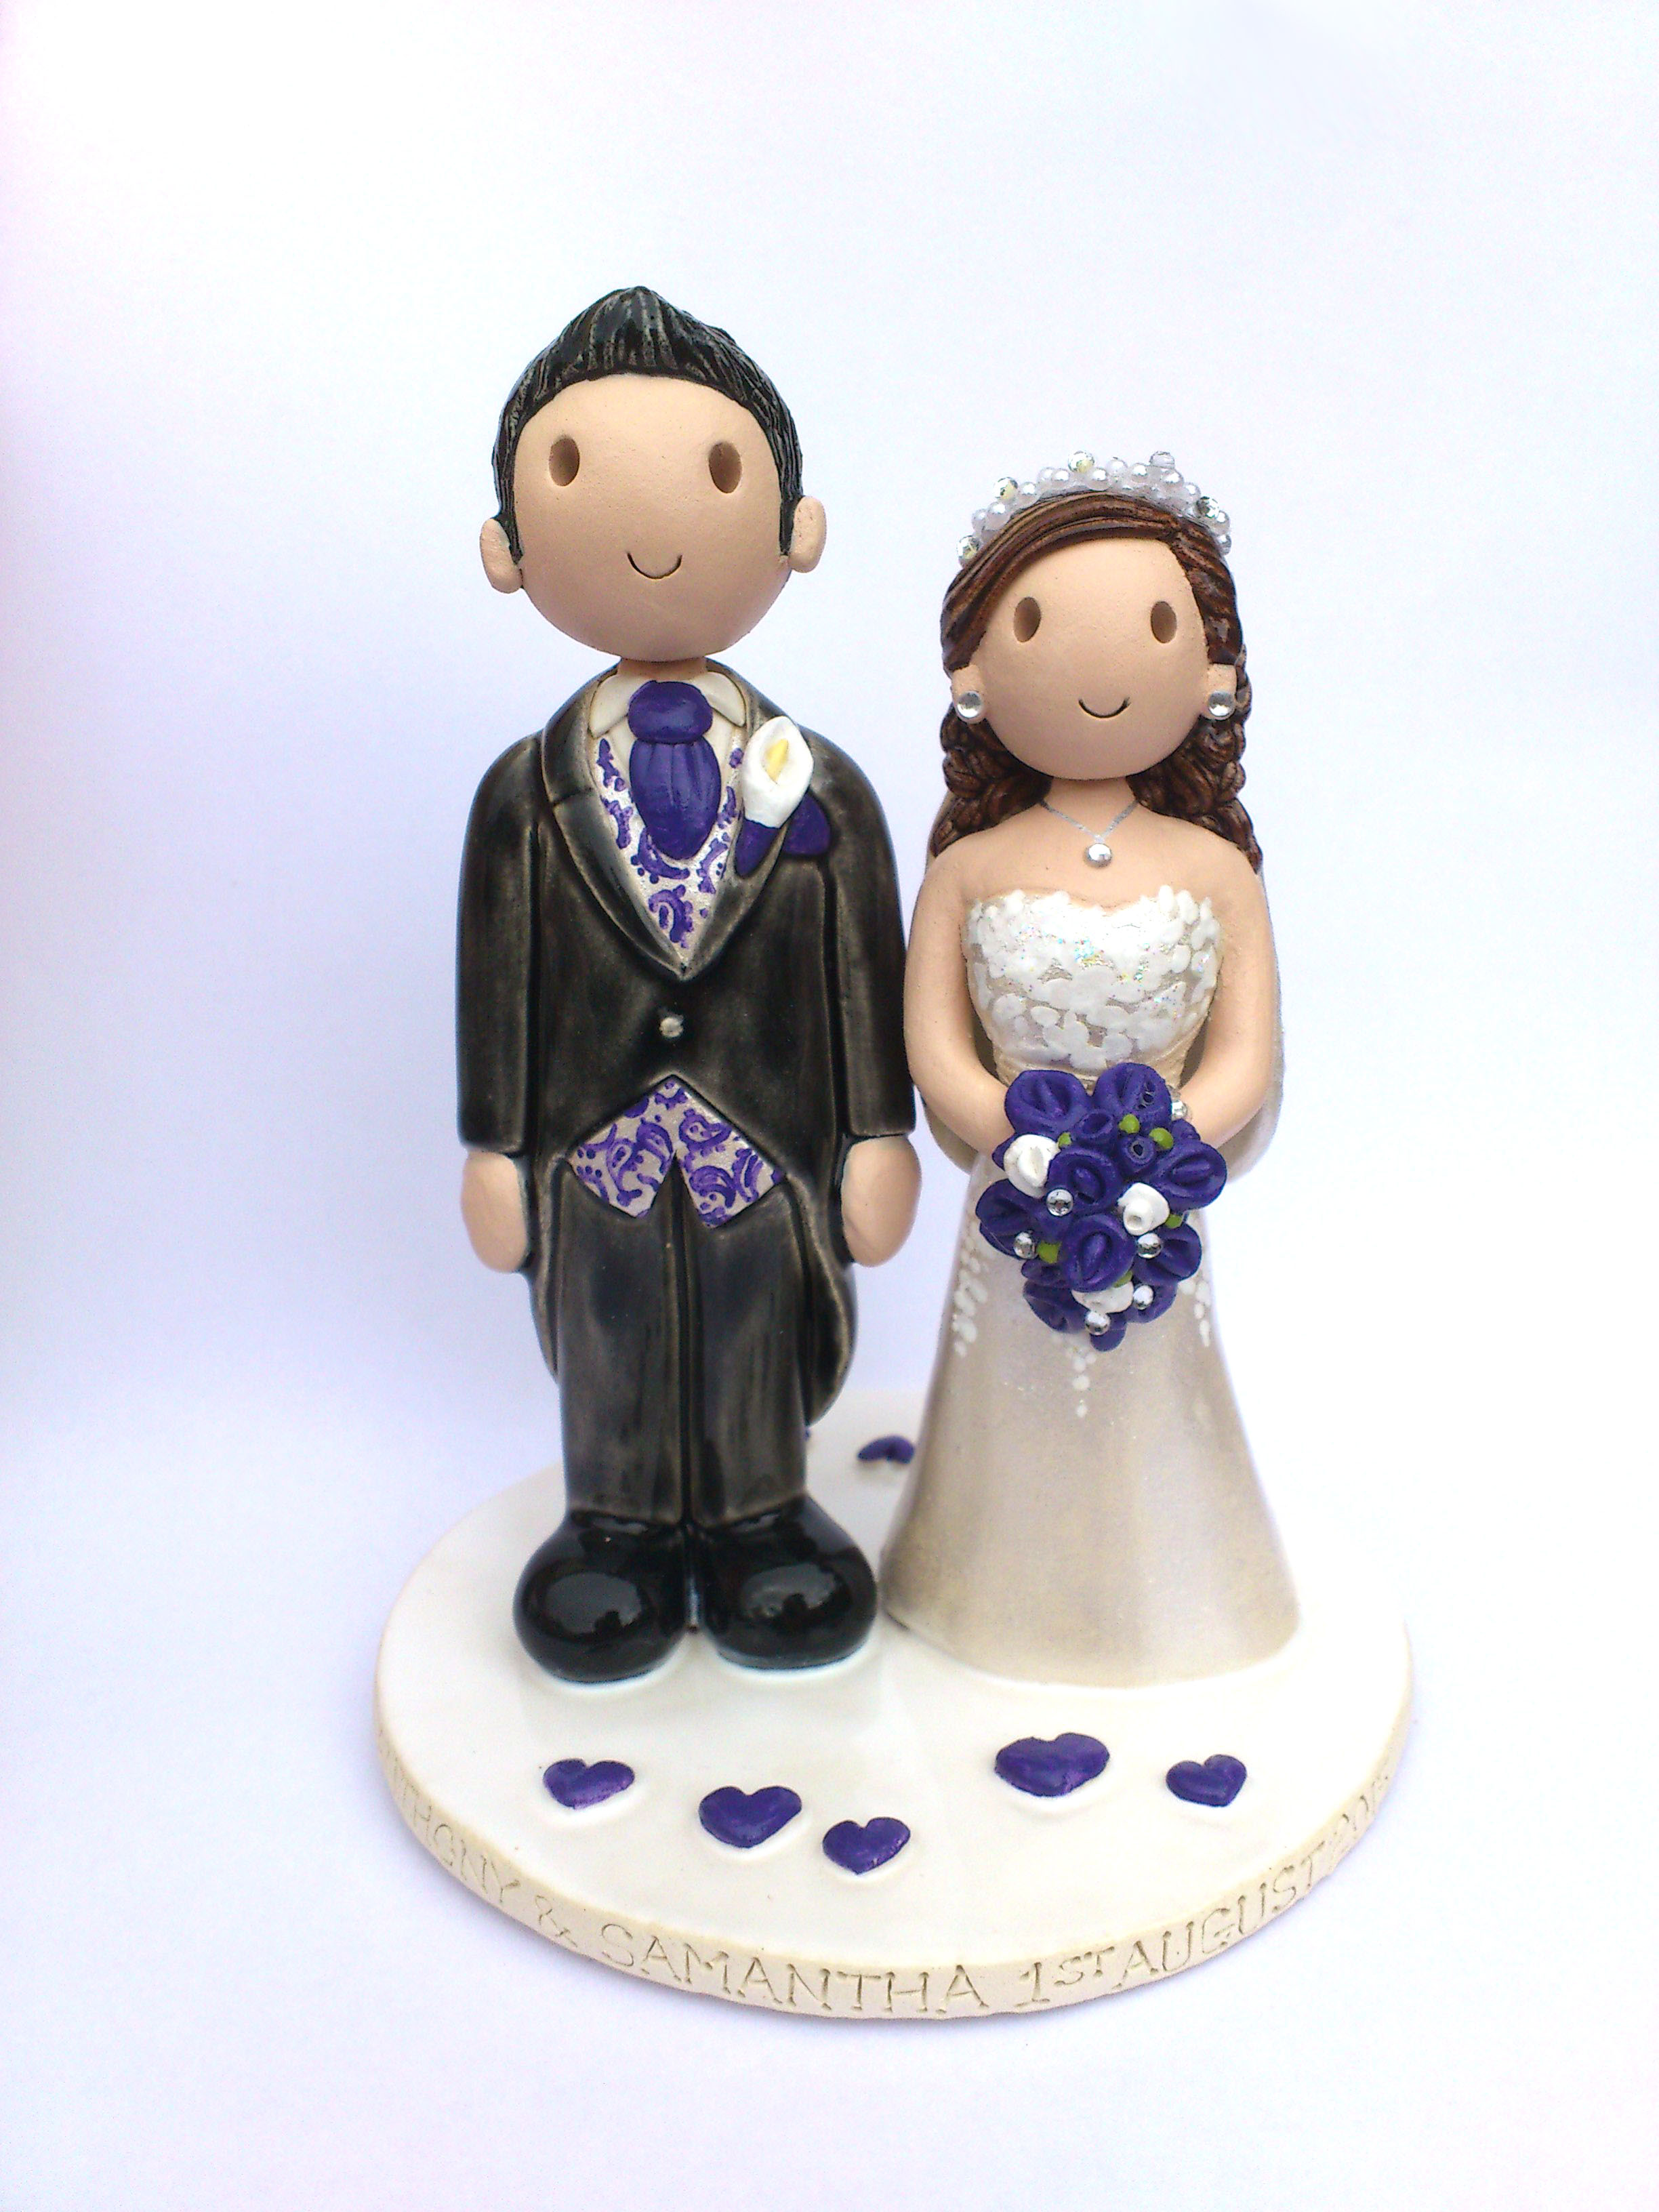 Cake Toppers Uk Wedding : Wedding Cake Toppers Gallery. Hand Made, Personalised Cake ...